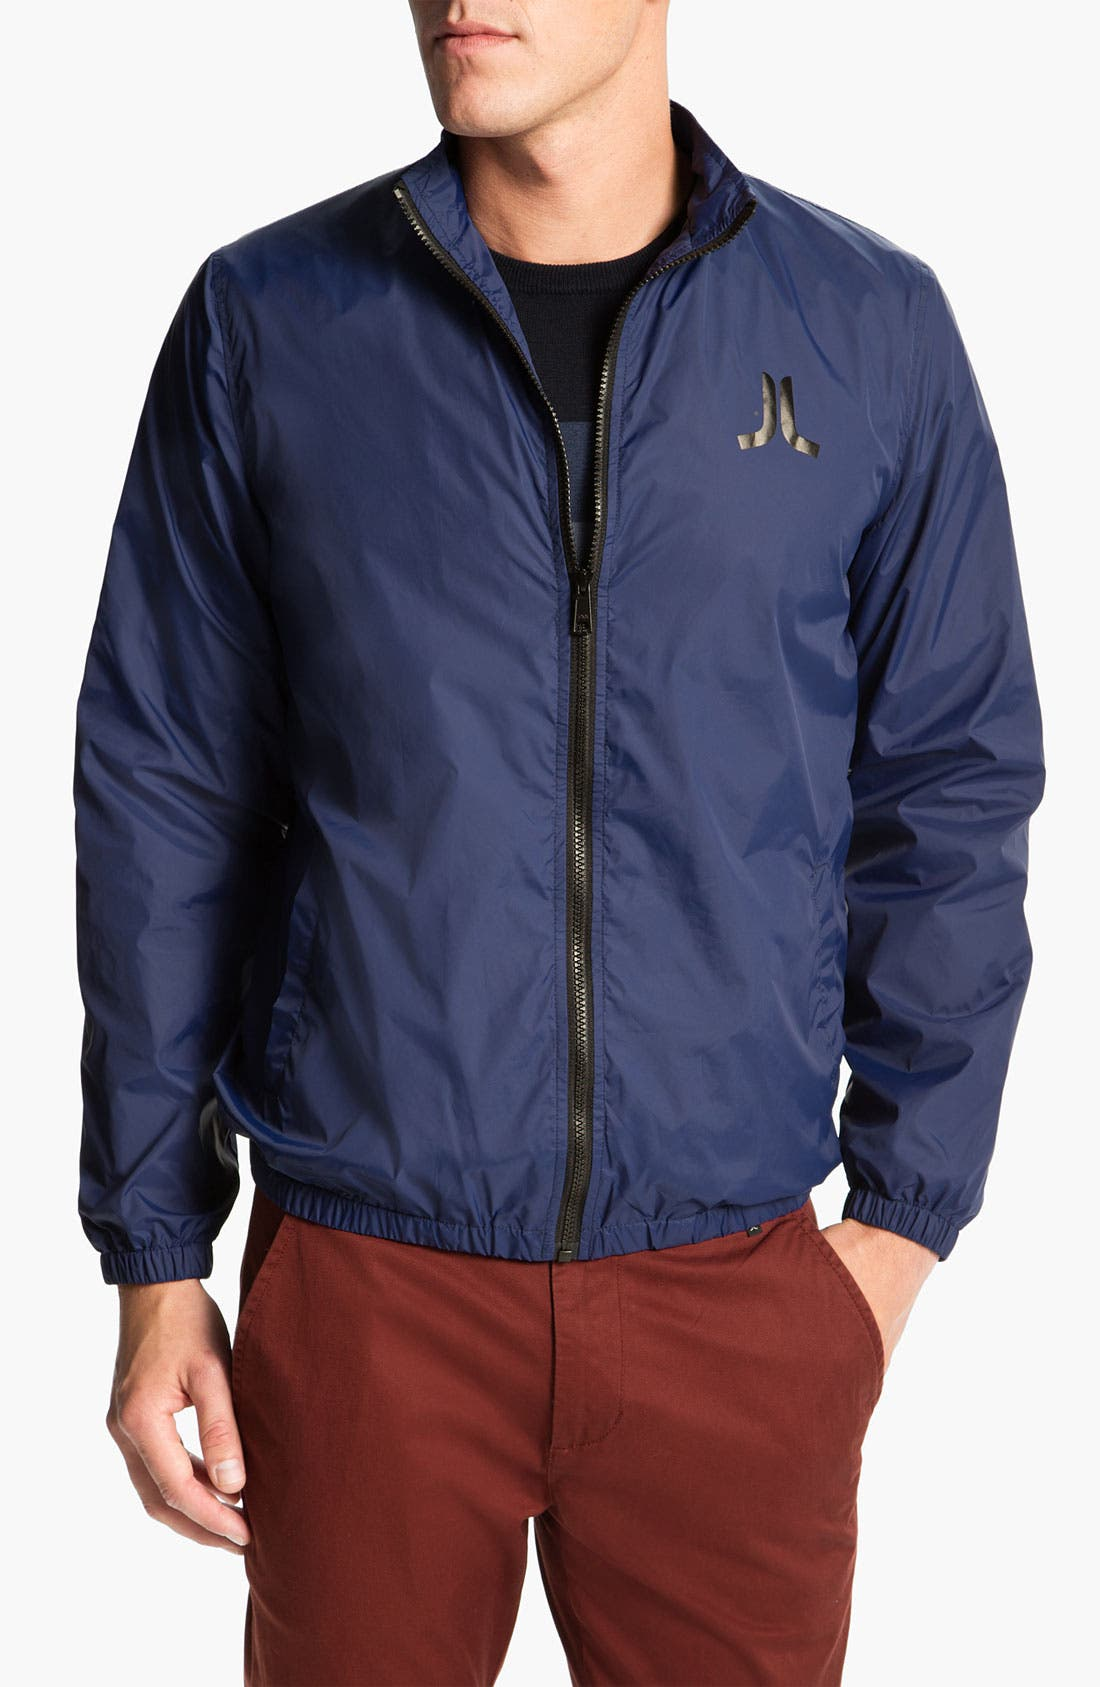 Alternate Image 1 Selected - WeSC 'Jockum' Jacket